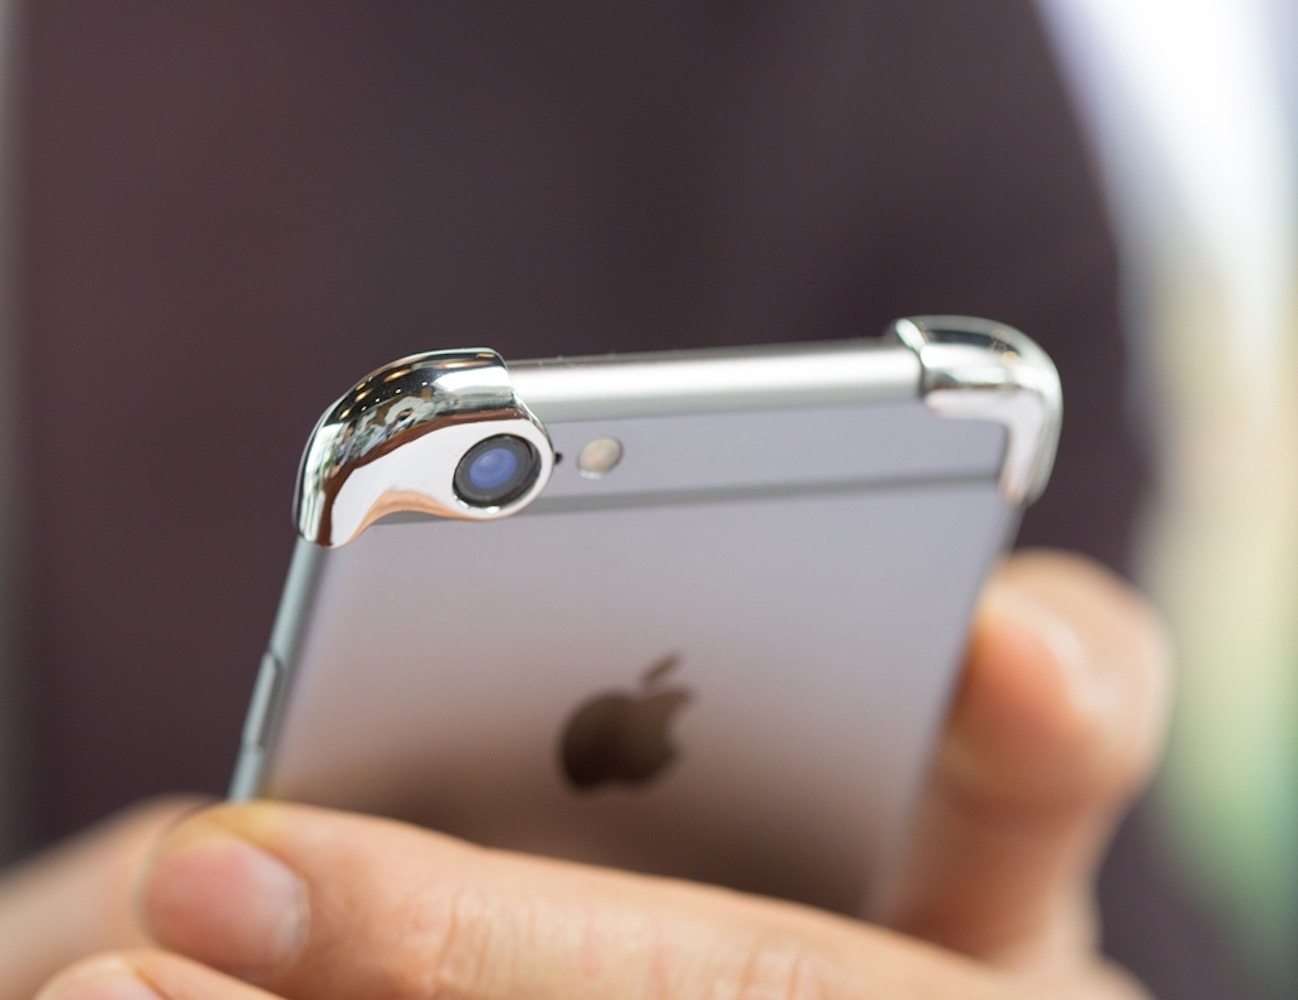 slimmest-iphone-case-made-of-silver-03